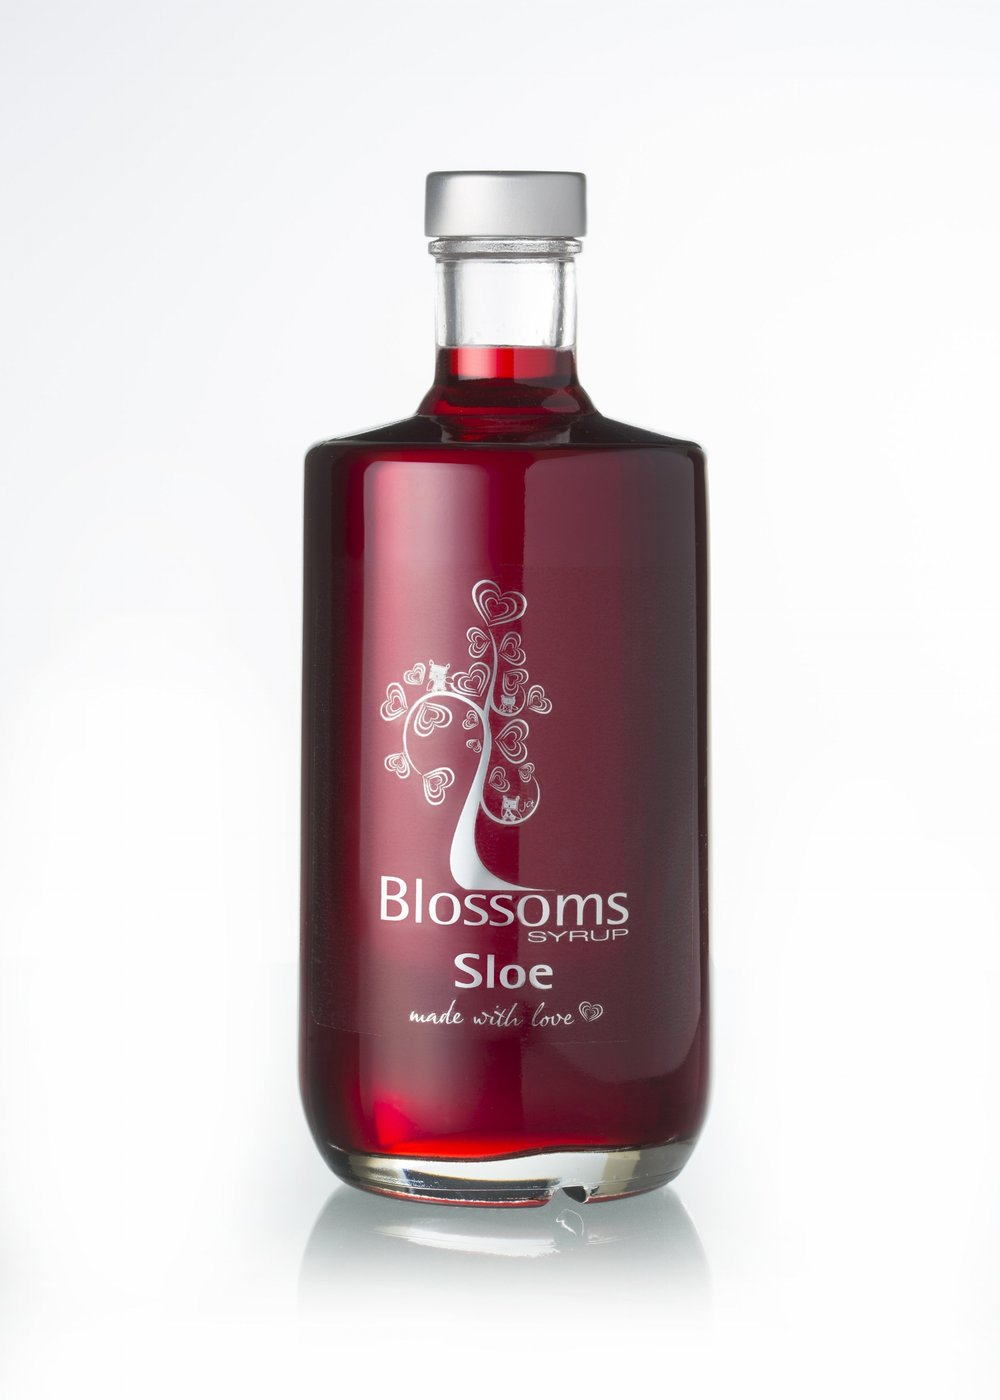 blossoms syrup sloe